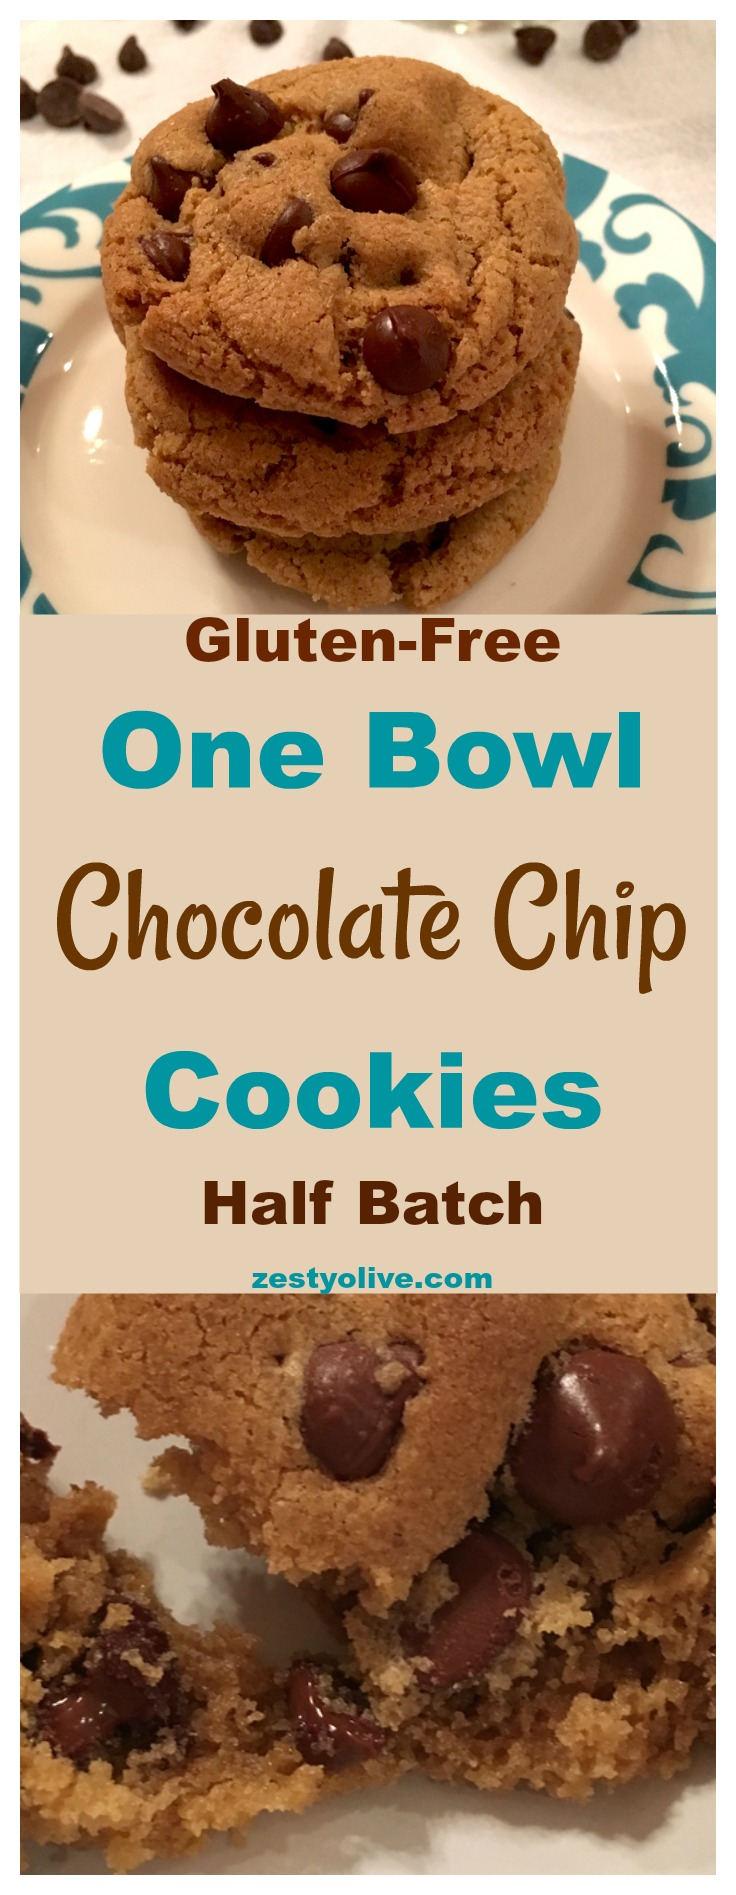 Easy Gluten-Free One Bowl Half Batch Chocolate Chip Cookies. Gooey and delicious - the best chocolate chip cookie recipe!